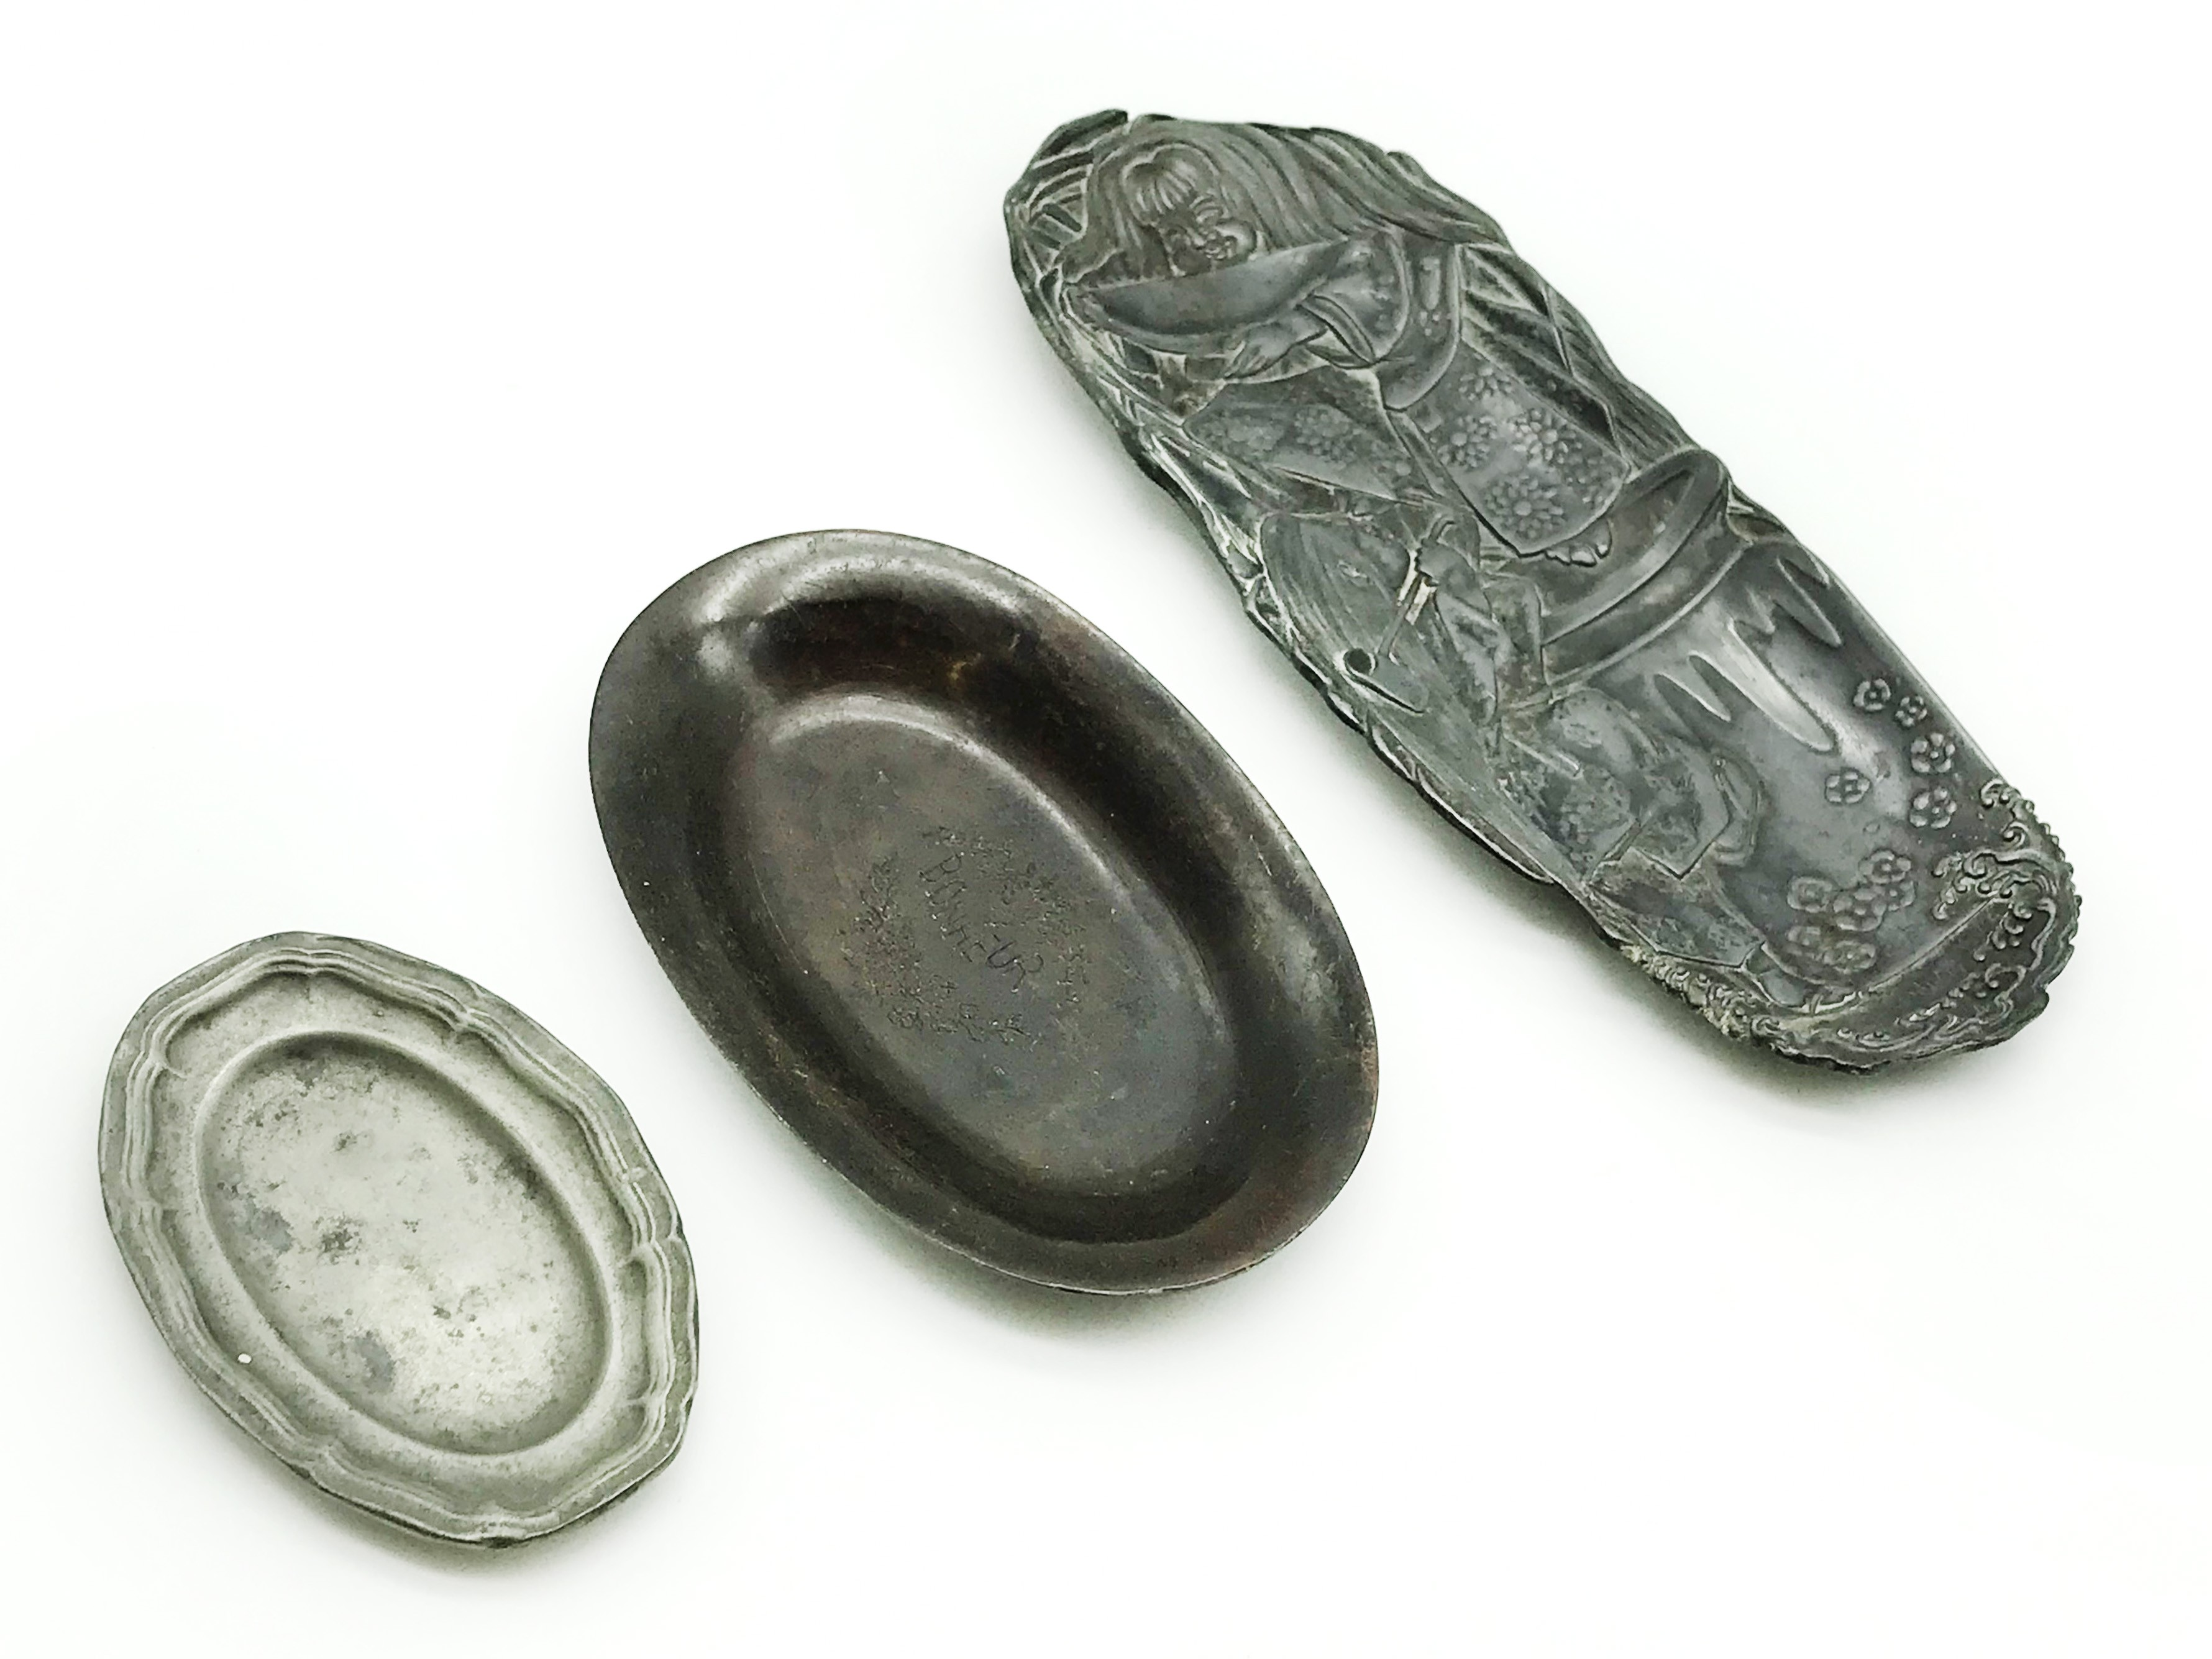 Lot 5 - THREE OLD PIN TRAYS / DISHES - BRONZE PEWTER